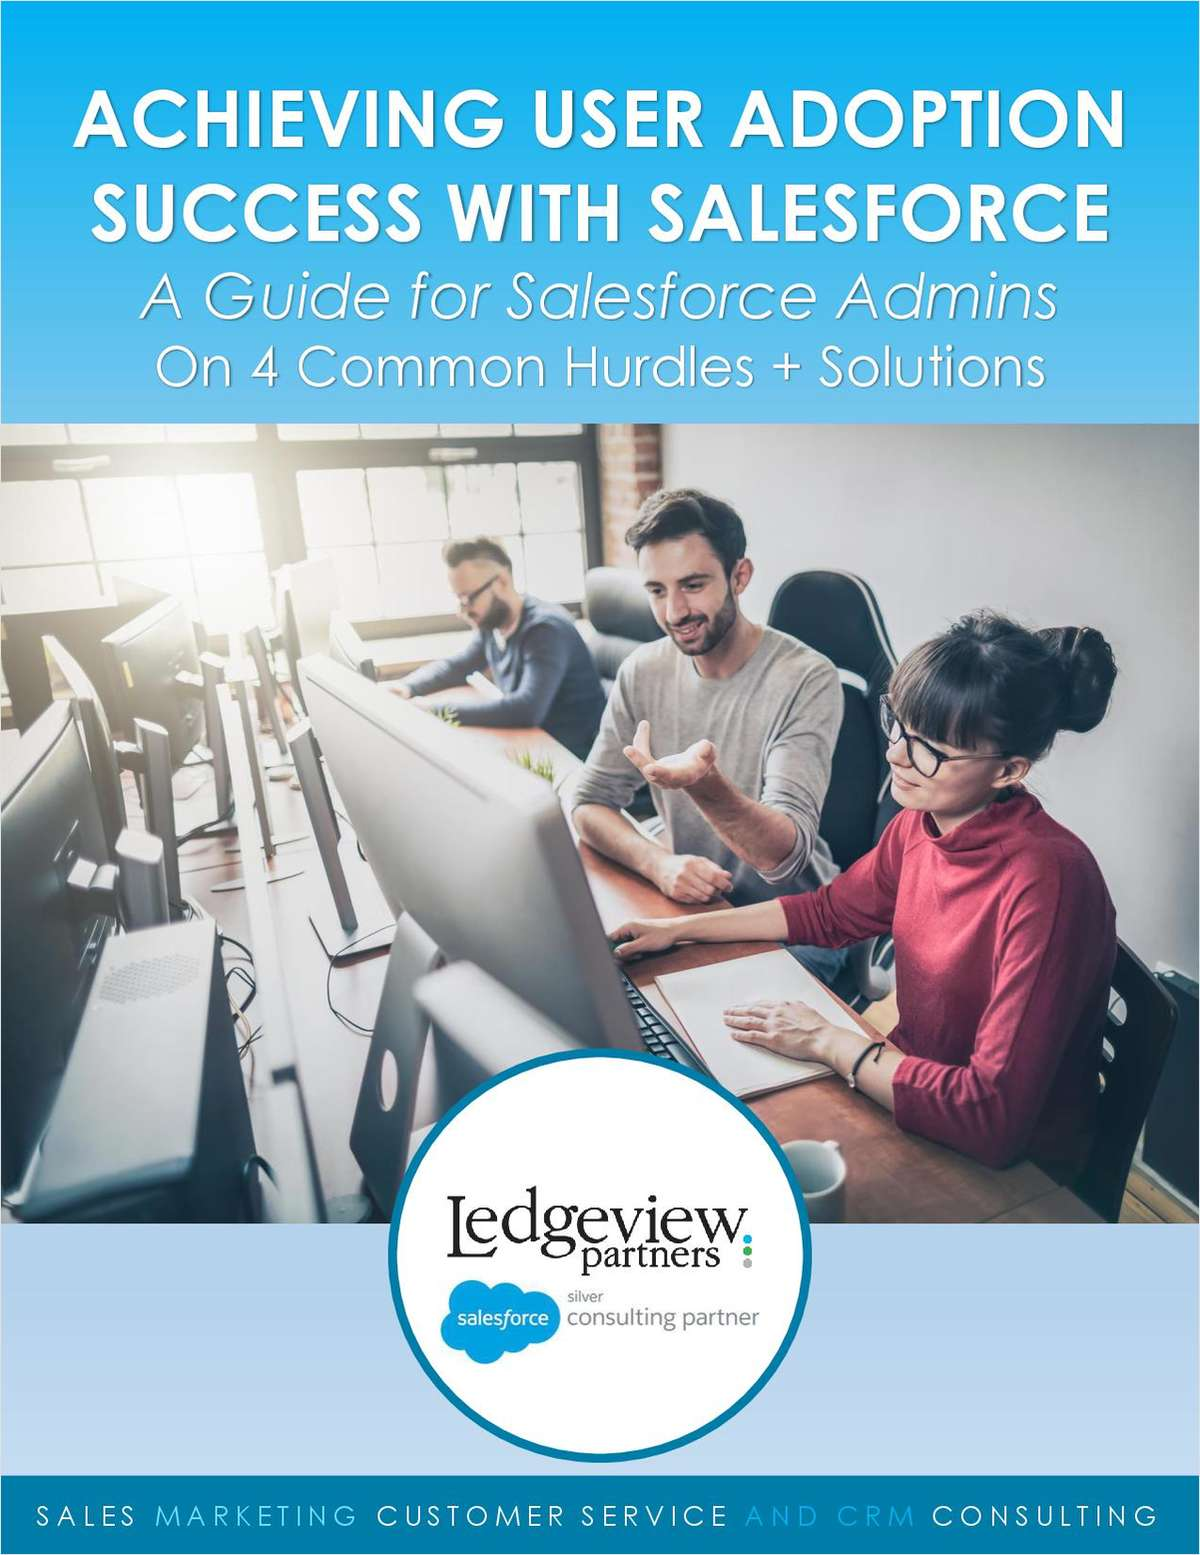 How to Achieve High and Continuous User Adoption with Salesforce